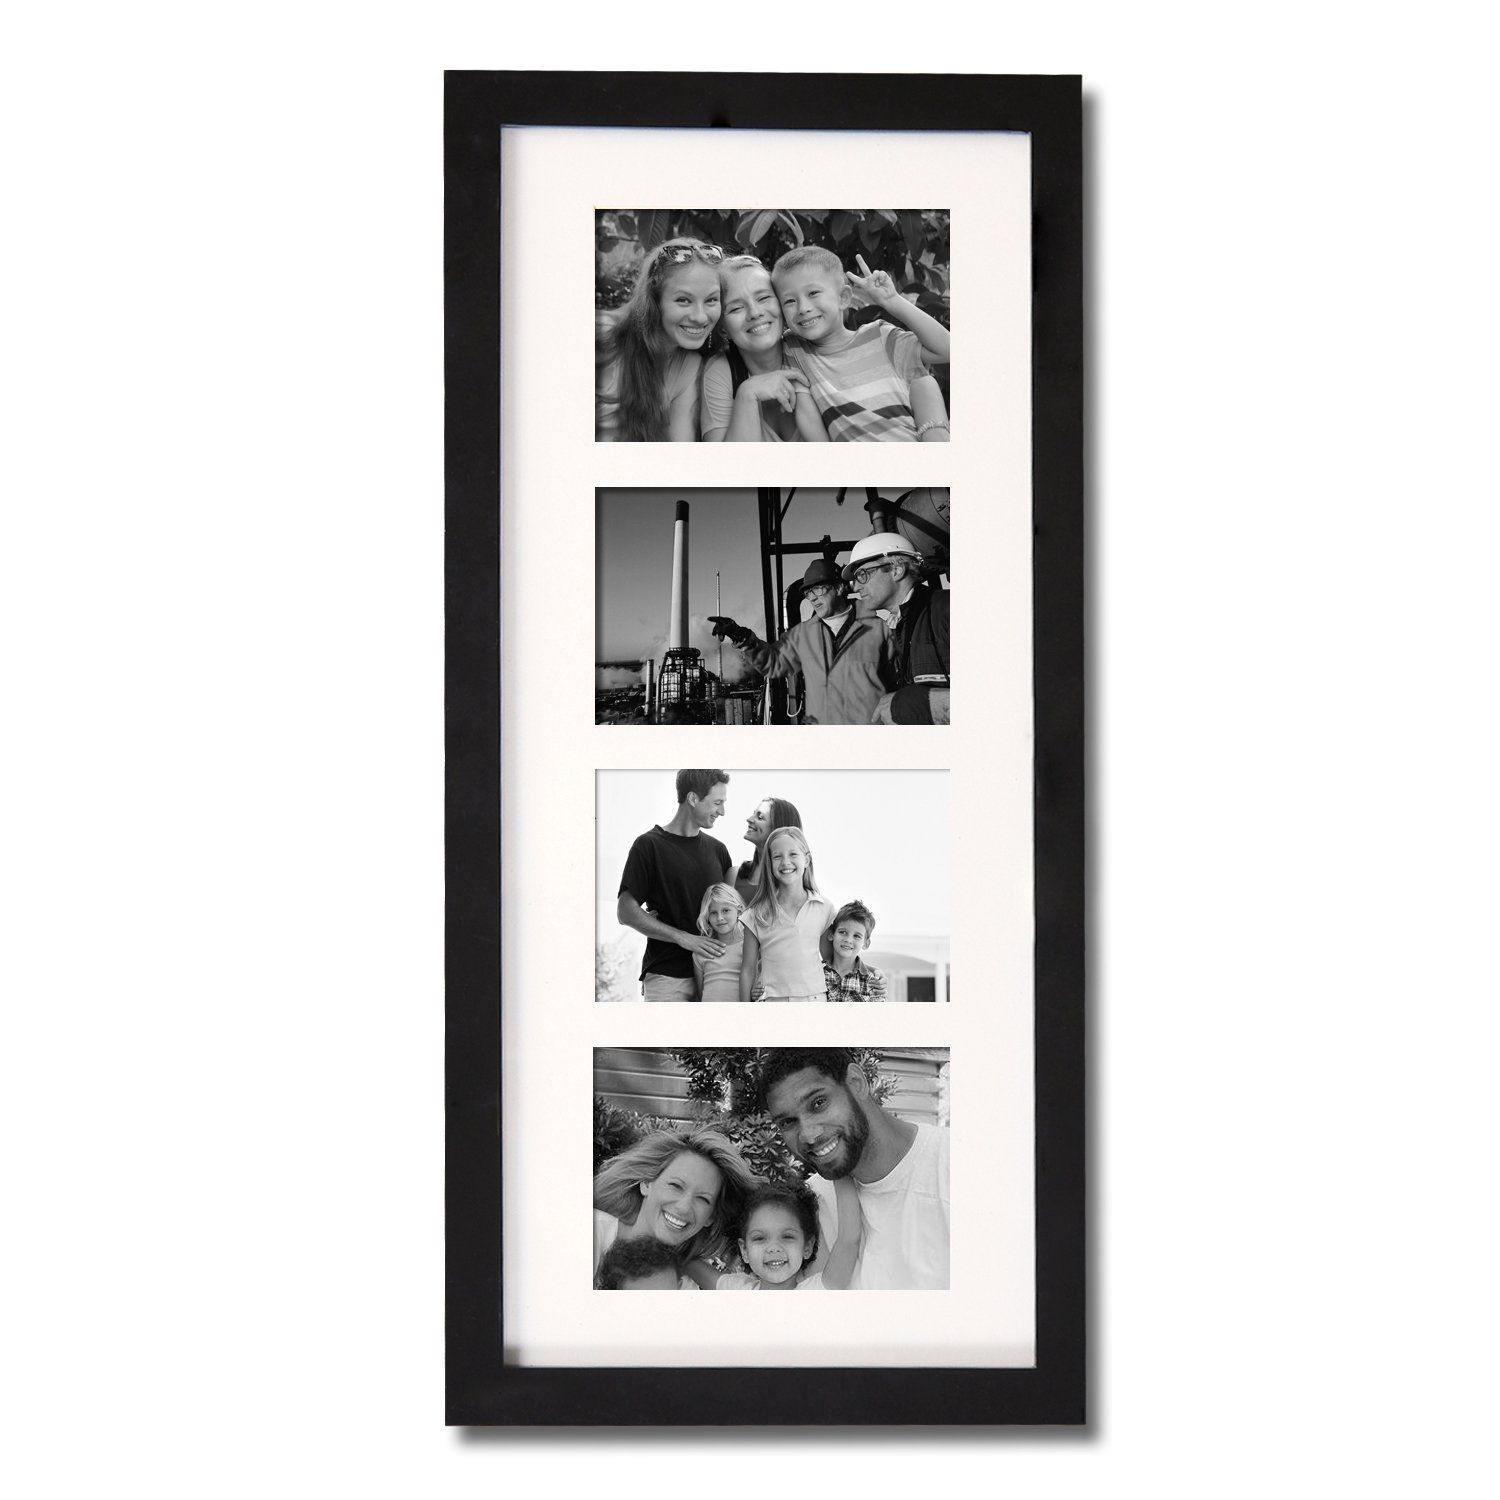 Adeco (PF0426) Decorative Black Wood Wall Hanging Picture Photo ...